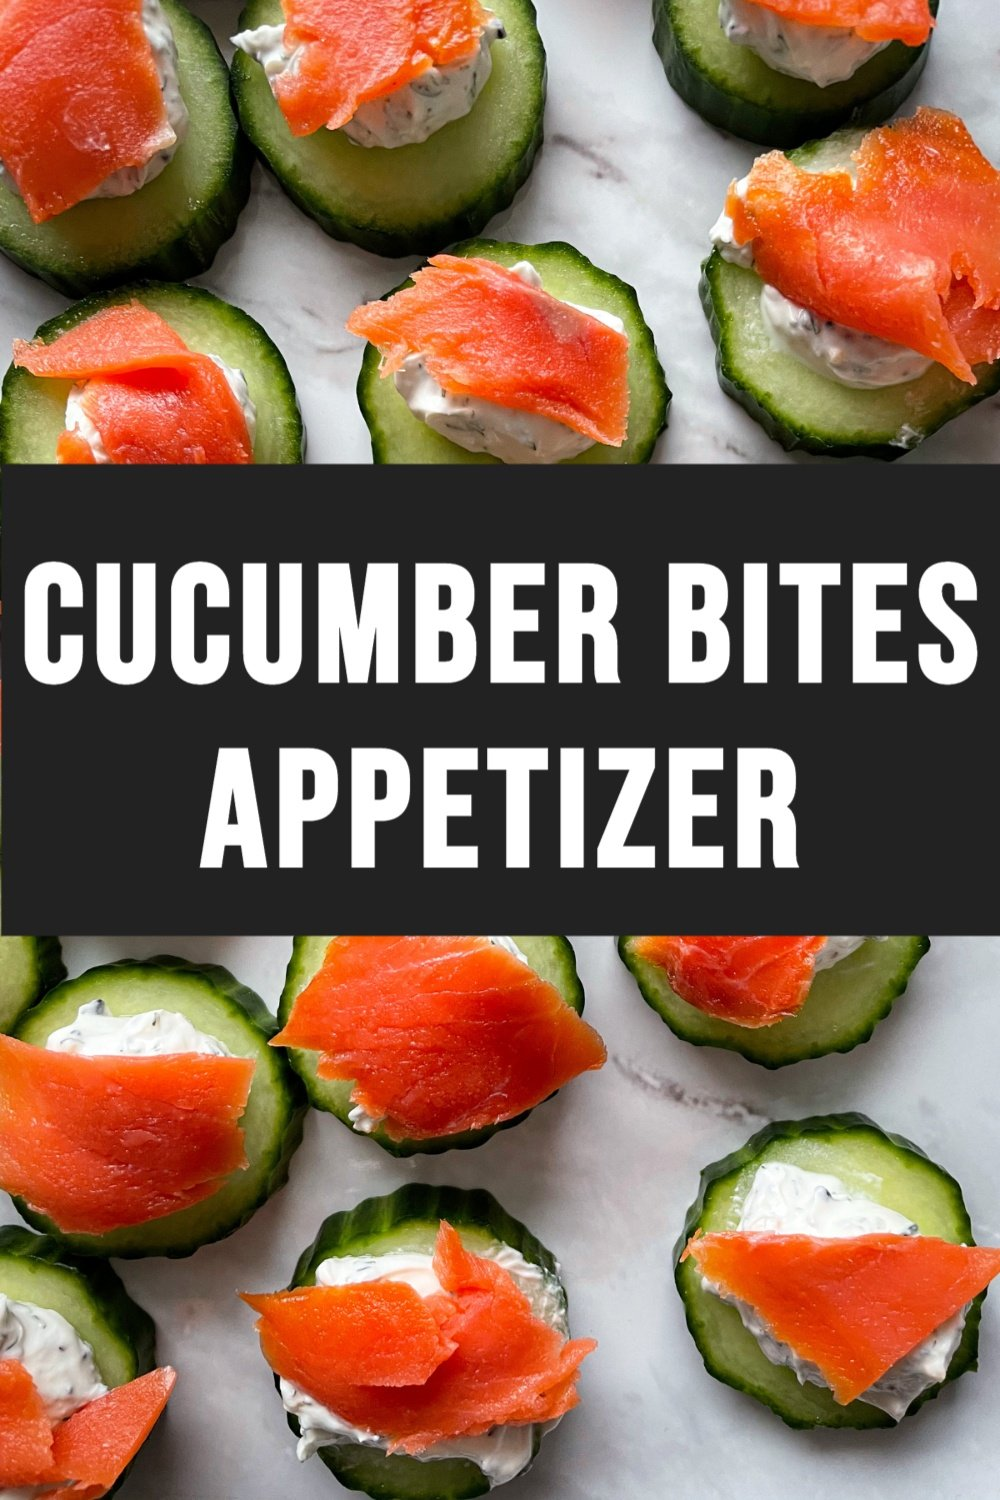 Cucumber Bites Appetizer On White Background with Text Overlay